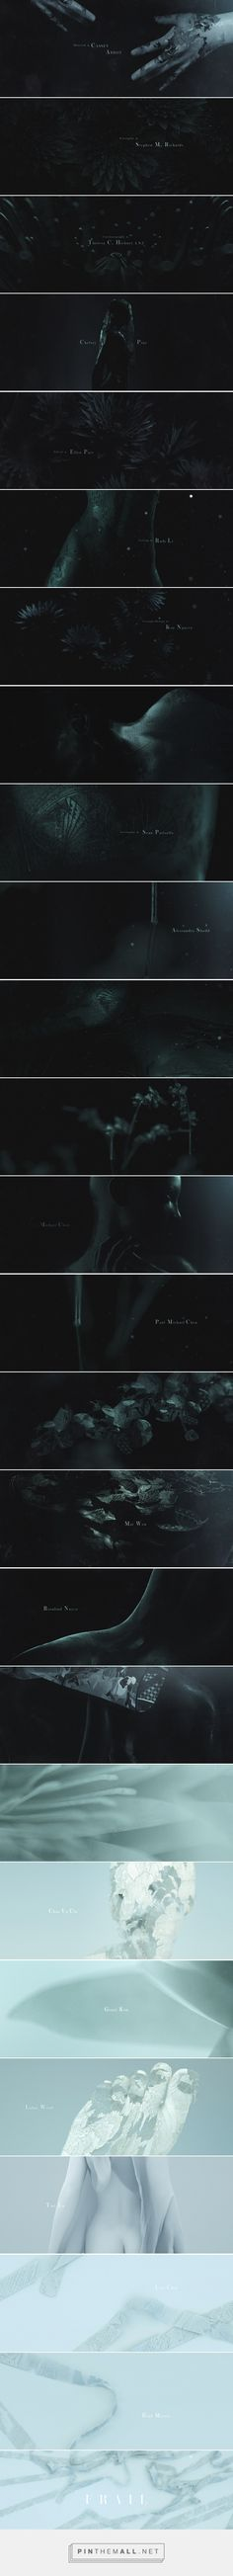 FRAIL - MAIN TITLE DESIGN : Ash Thorp... - a grouped images picture - Pin Them All